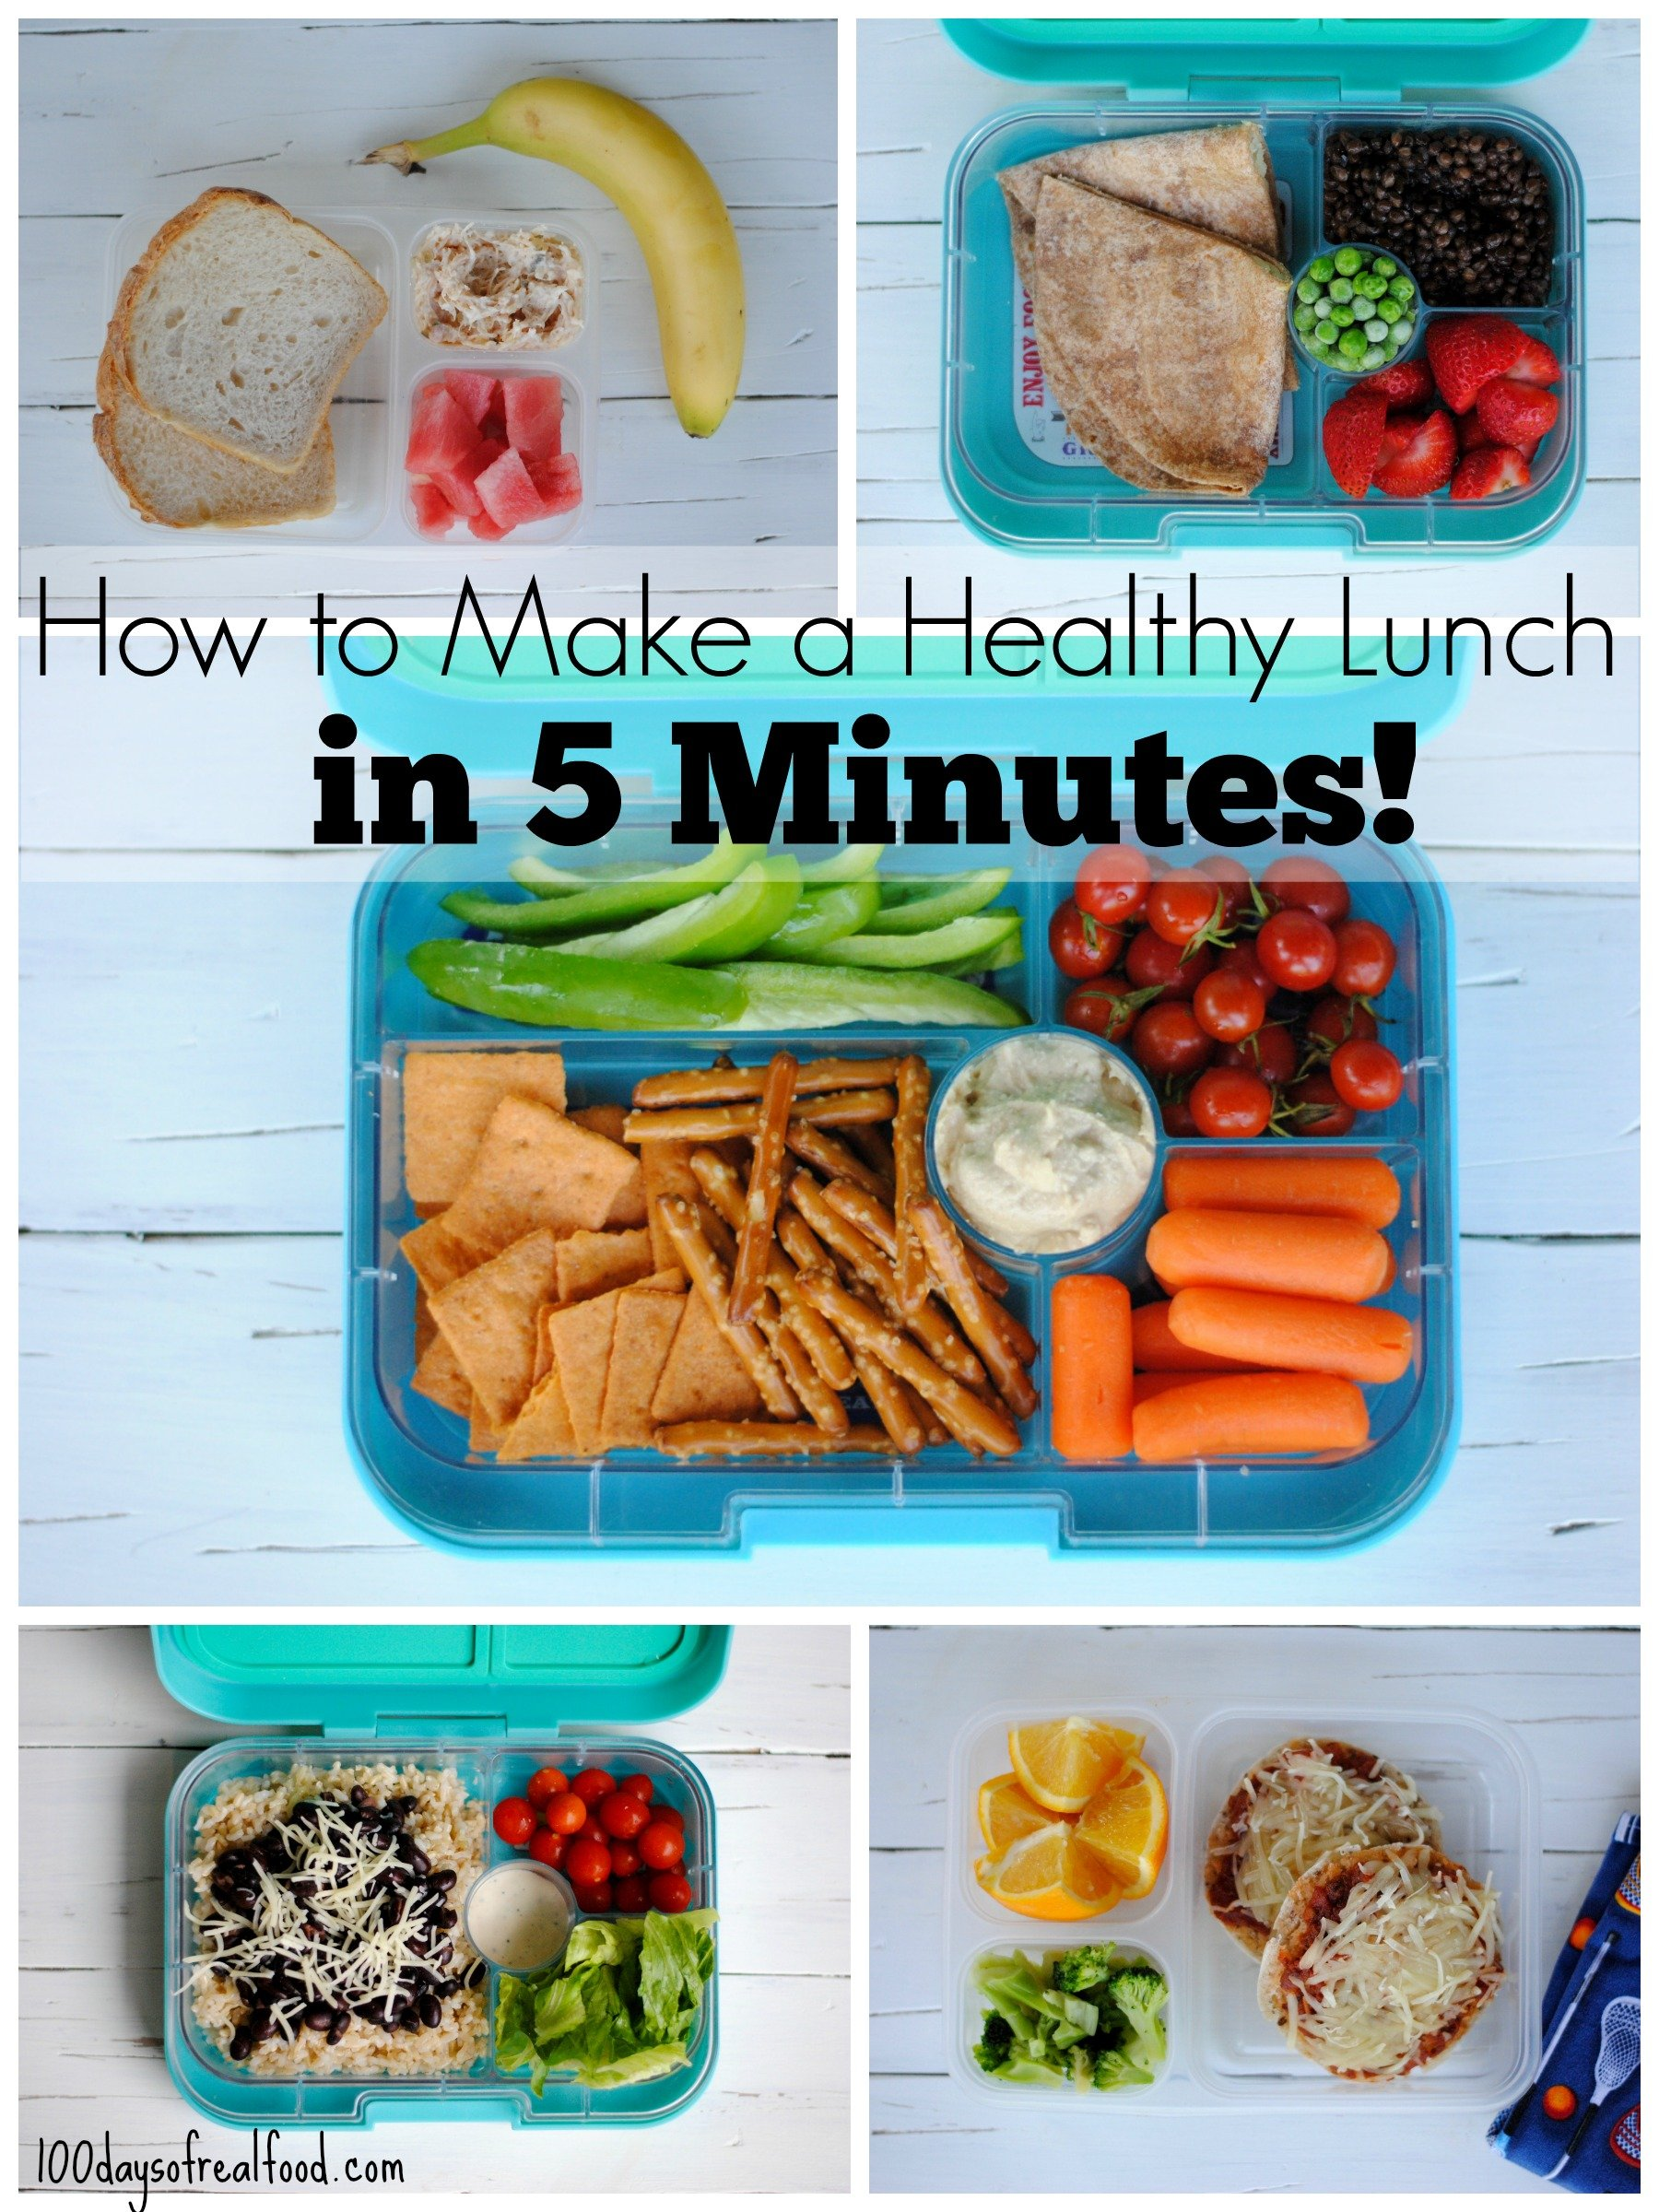 How to Make a Healthy Lunch